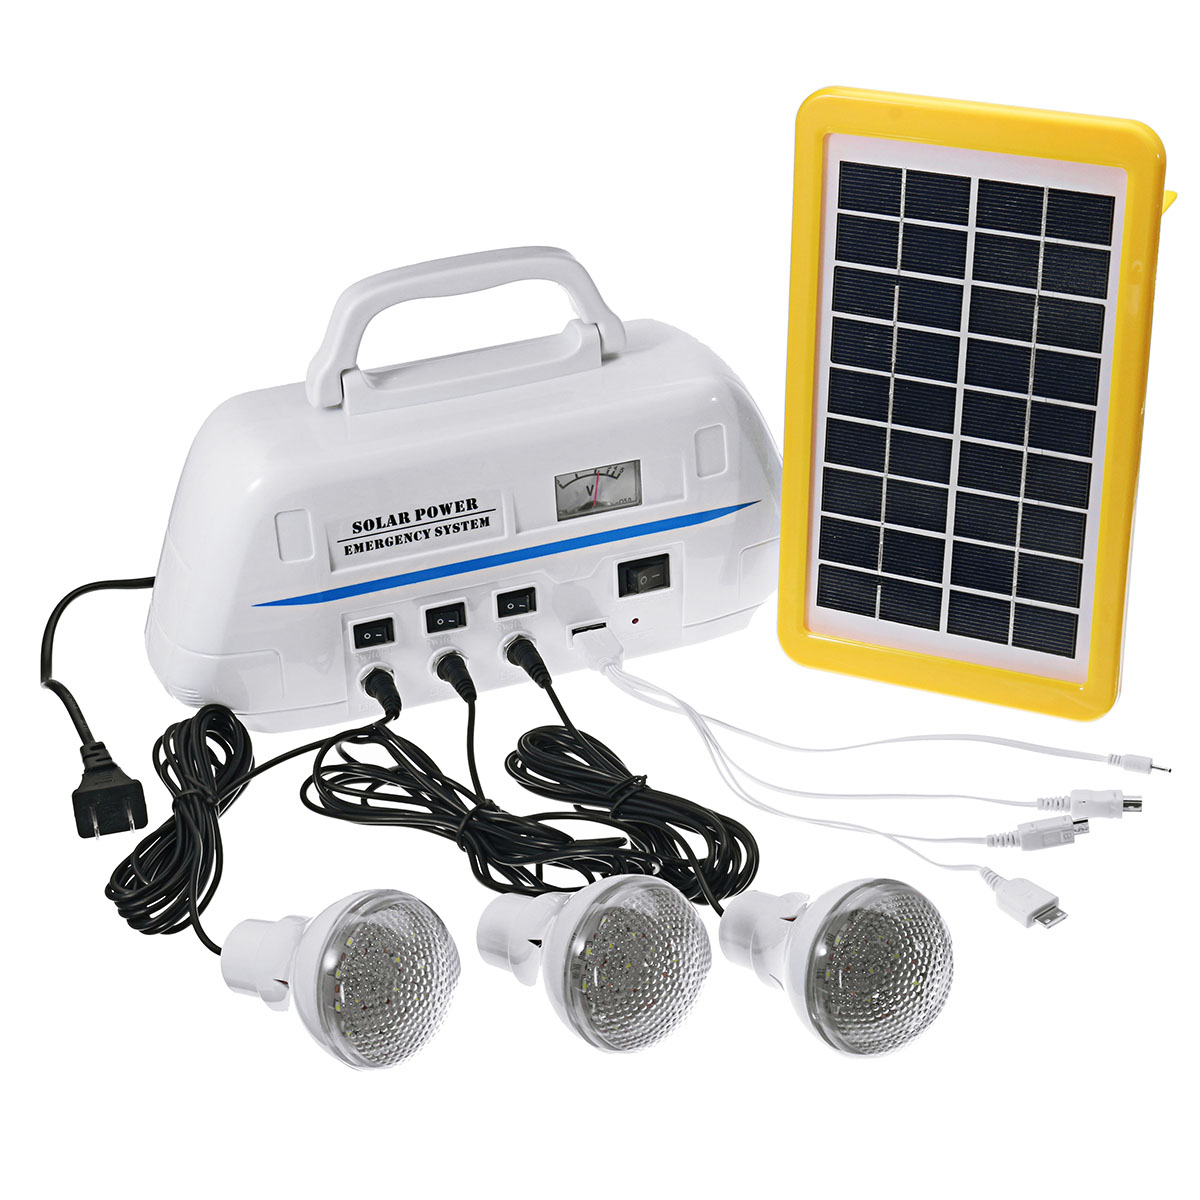 Smuxi Outdoor Portable Solar Generator System with Rechargeable Battery for Emergency Light Hand Hiking Lighting